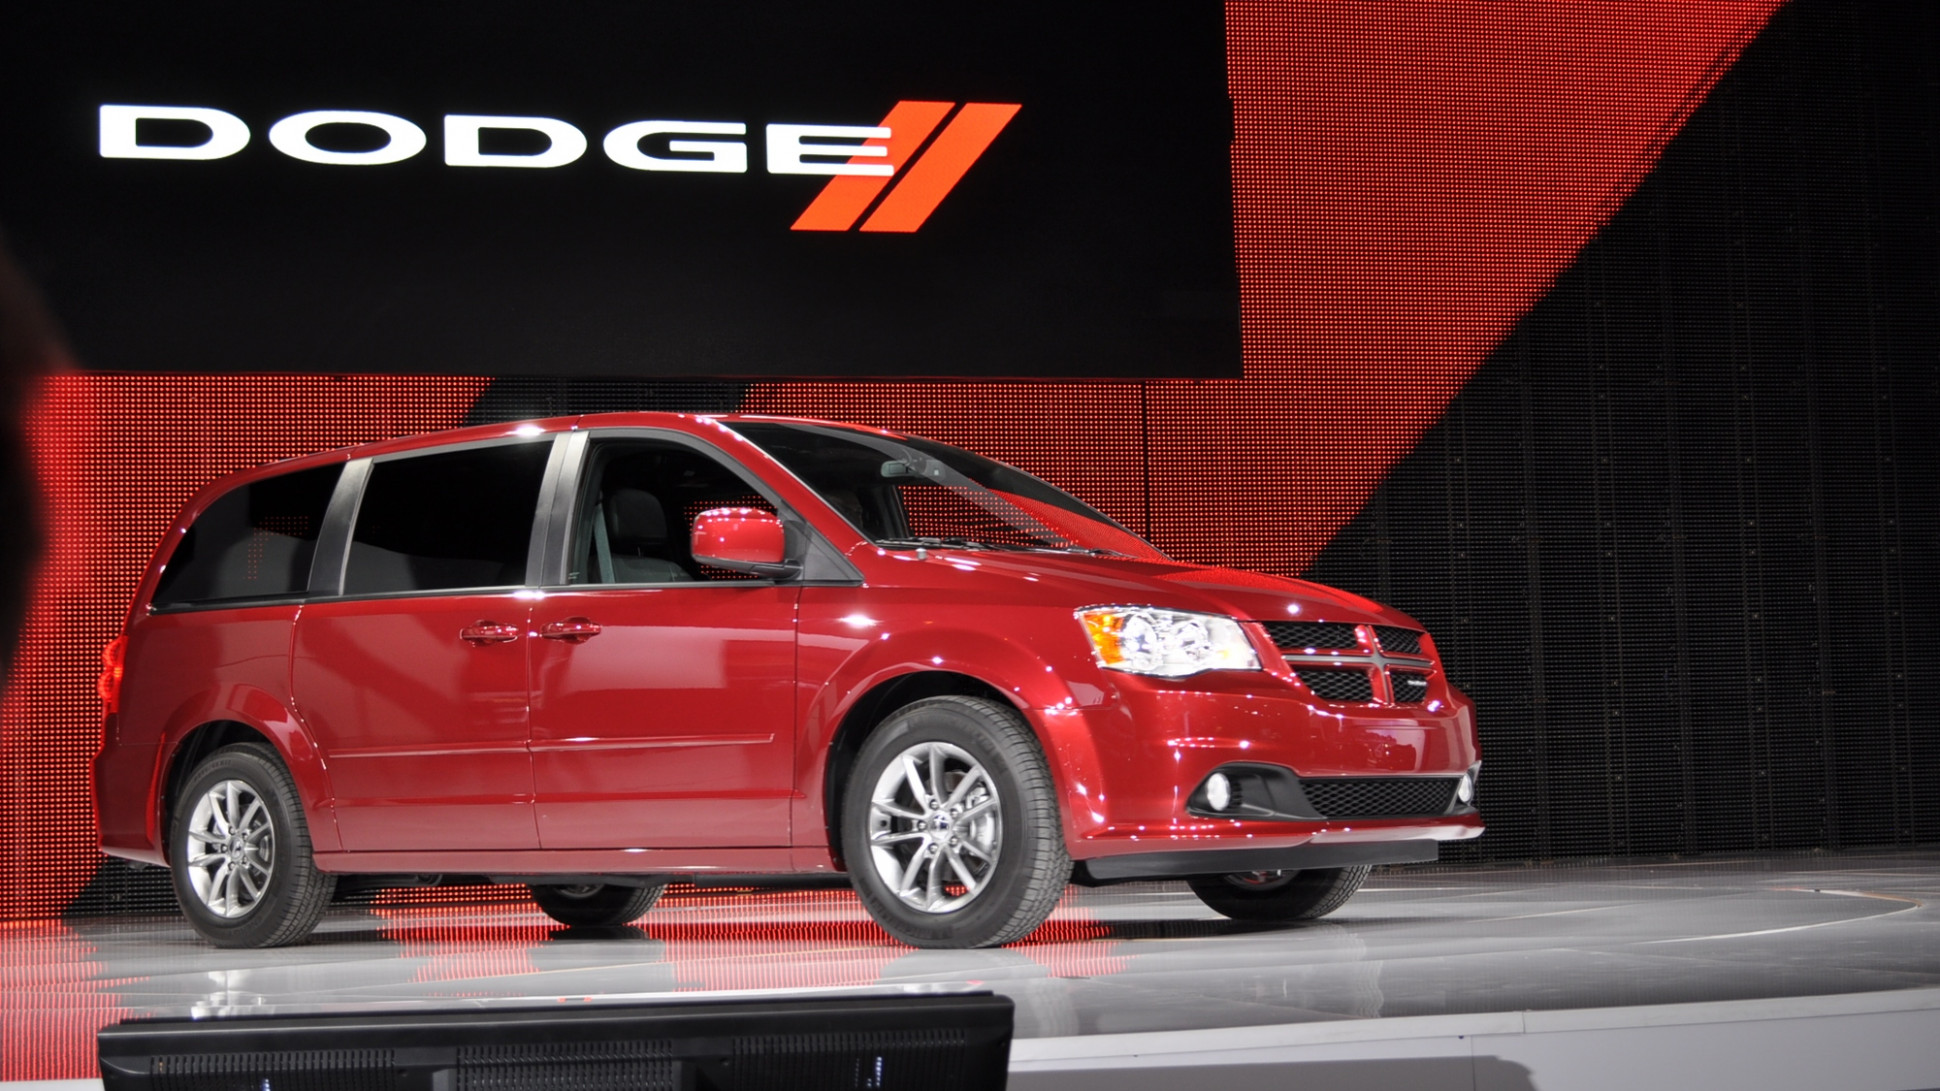 Exterior and Interior 2022 Dodge Caravan